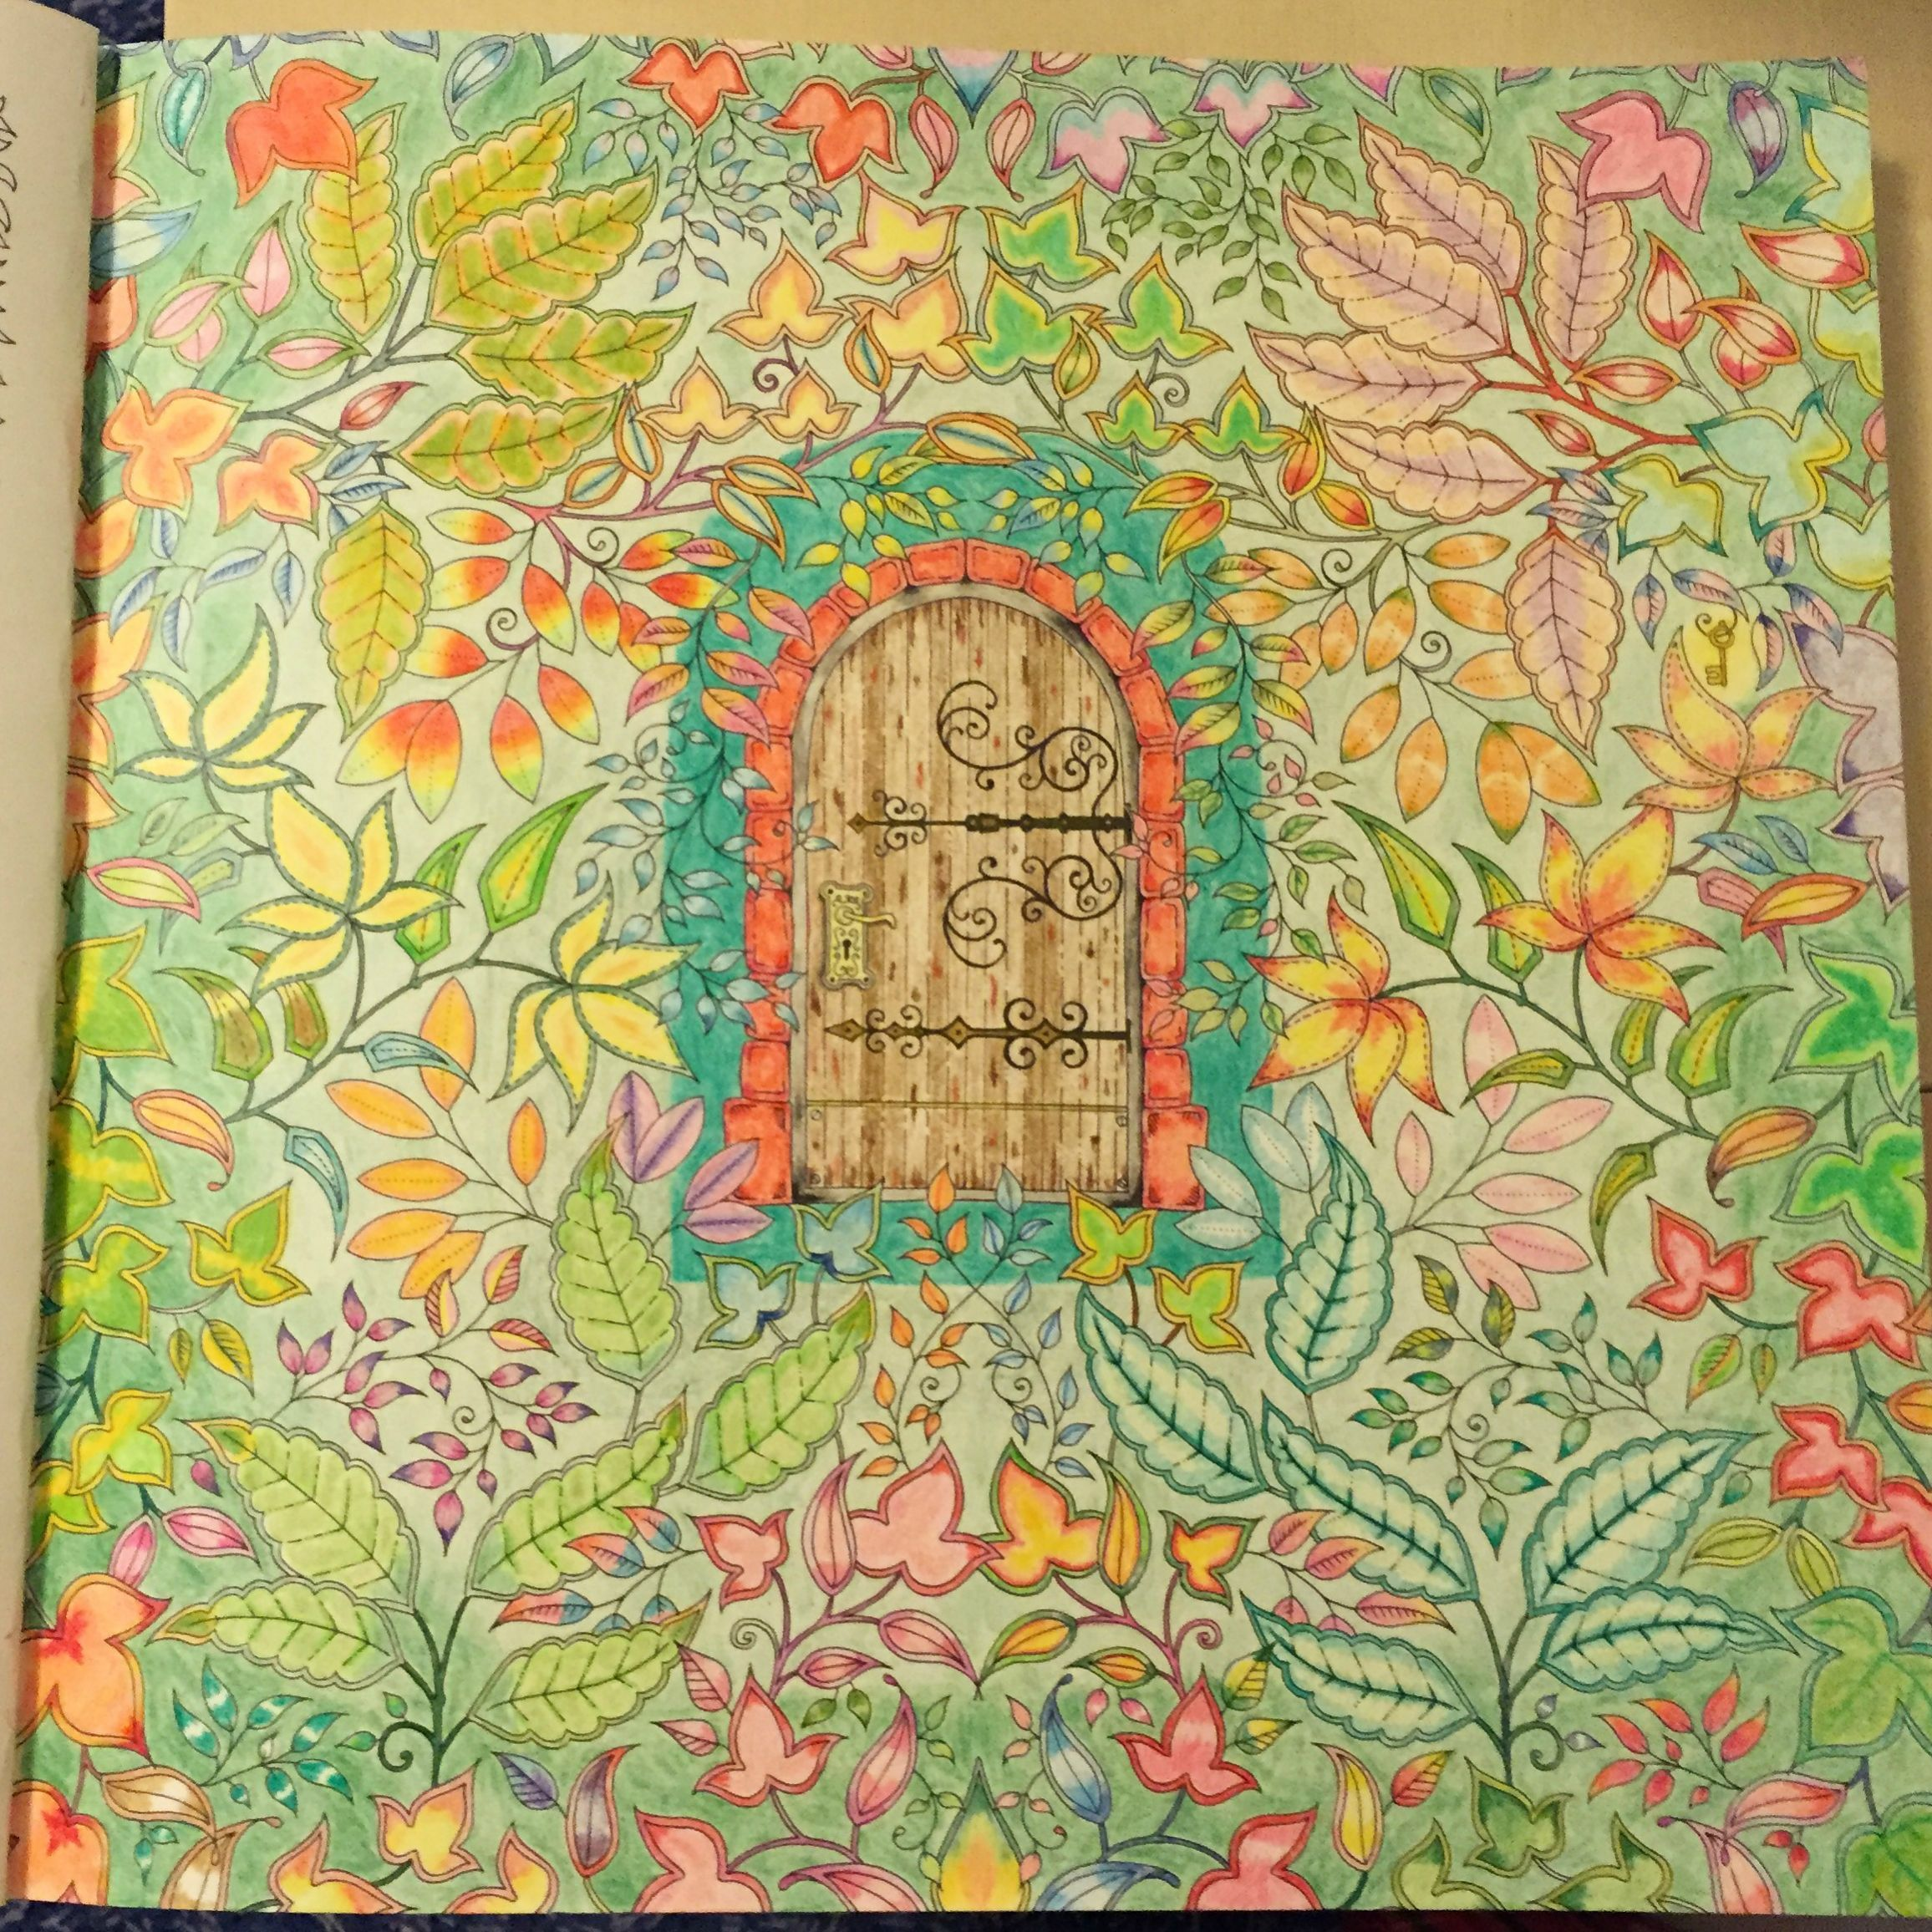 A Page From Secret Garden Colored By Reddit User U Nheea Coloring Adult ColoringColoring BooksCopic